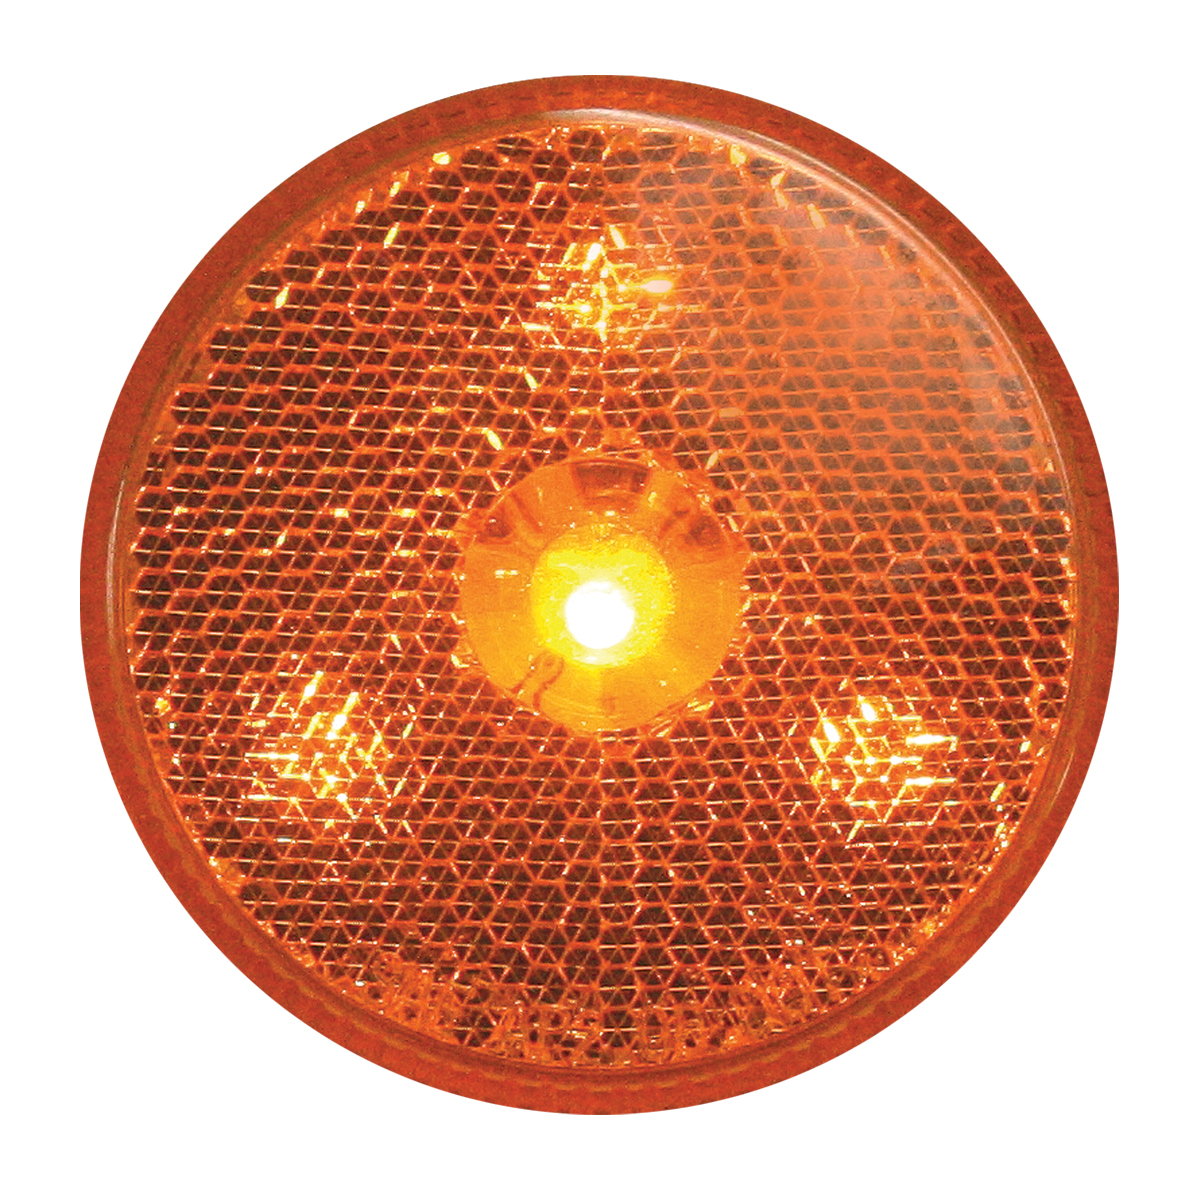 "76970 2.5"" Reflector Style LED Maker Light in Amber/Amber"